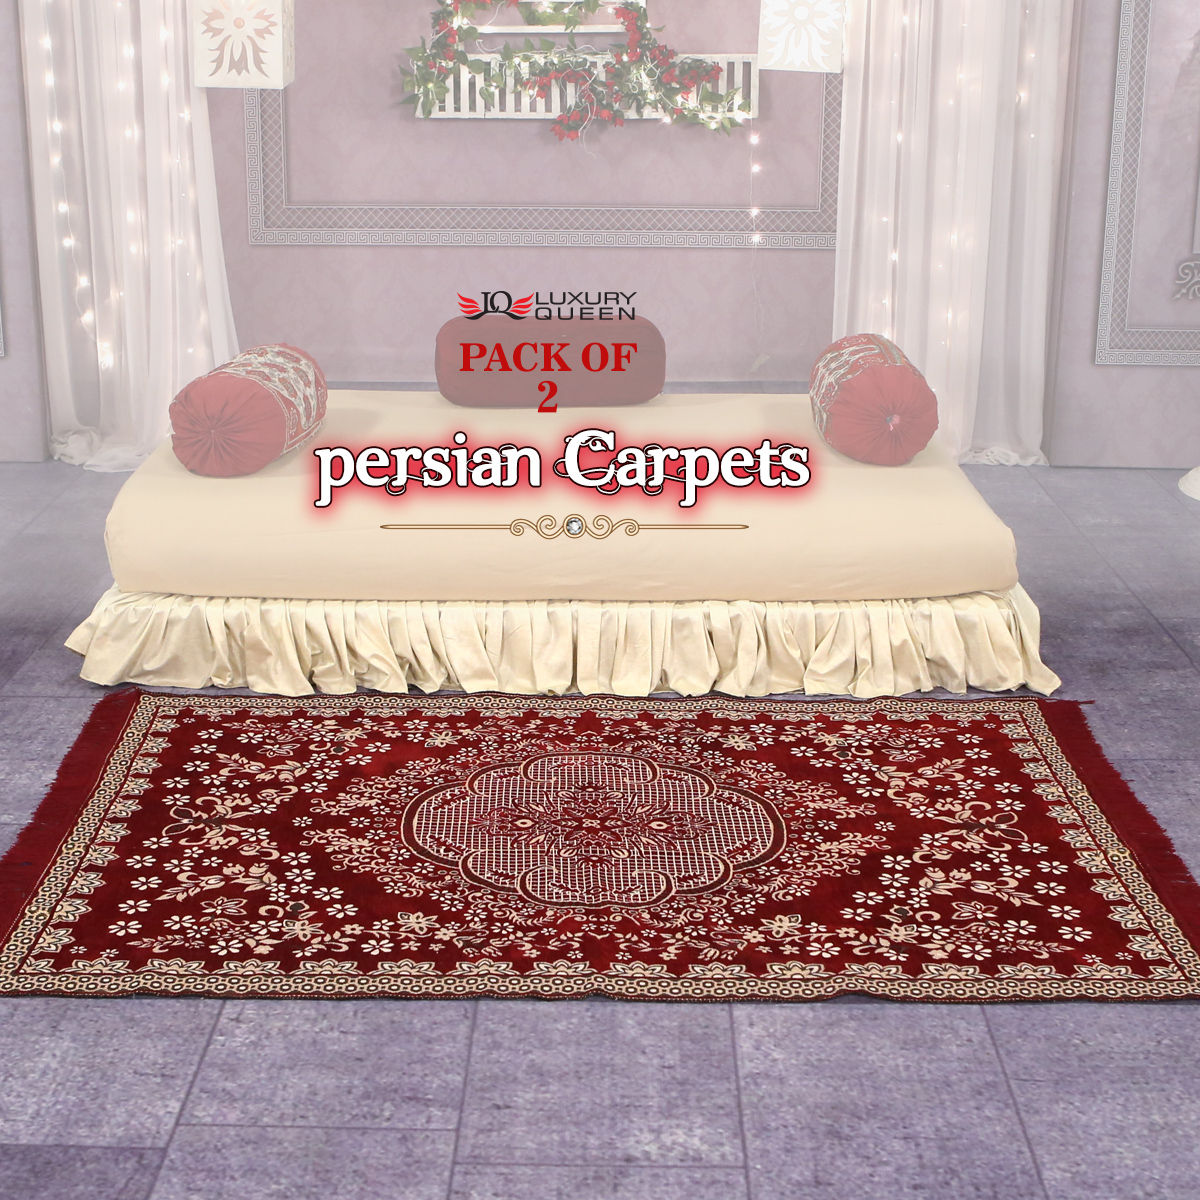 Hot deals store buy pack of 2 persian carpets p2c4 for Living room ideas trackid sp 006